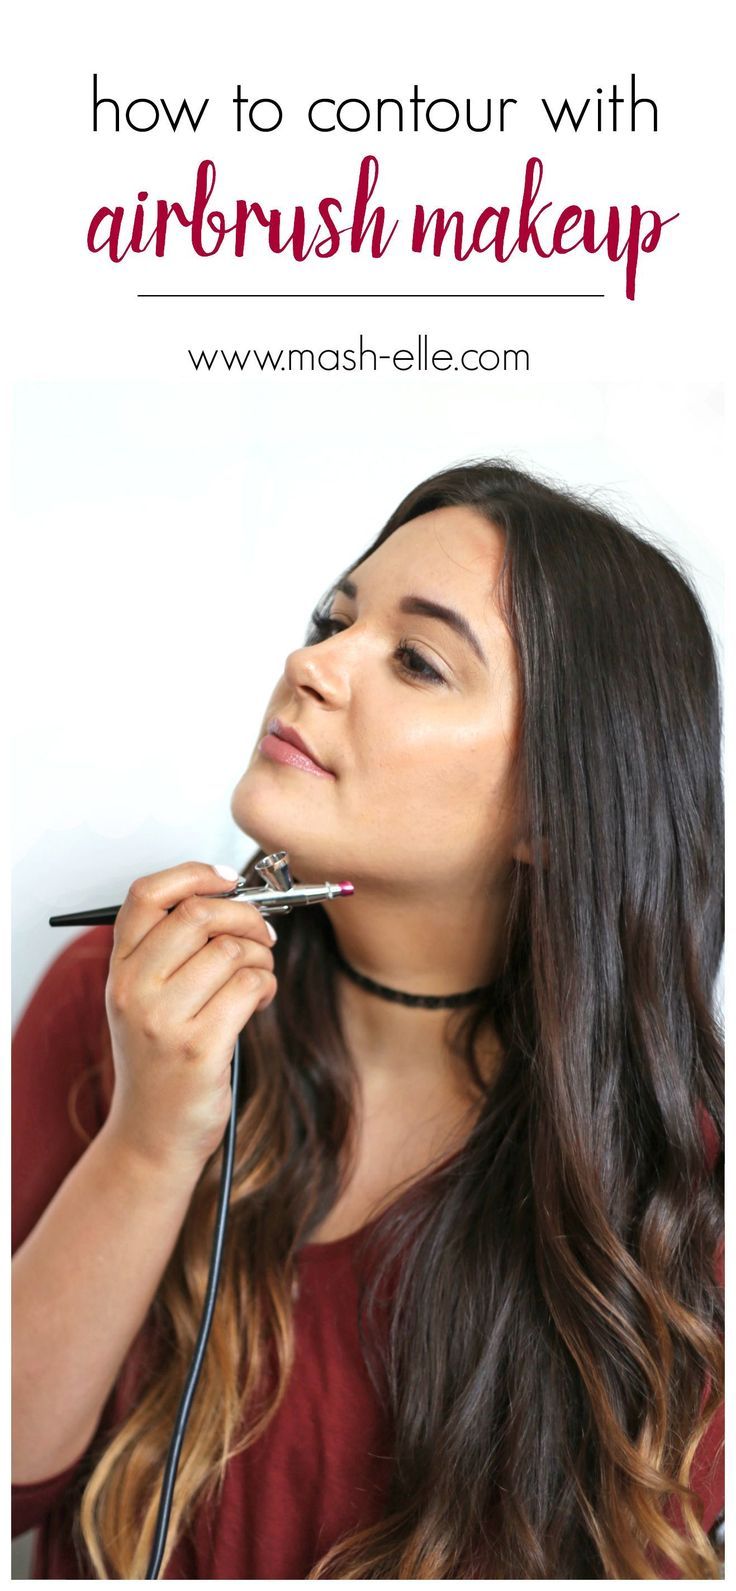 Airbrush makeup isn't as tricky as you may think! Check out this super easy...